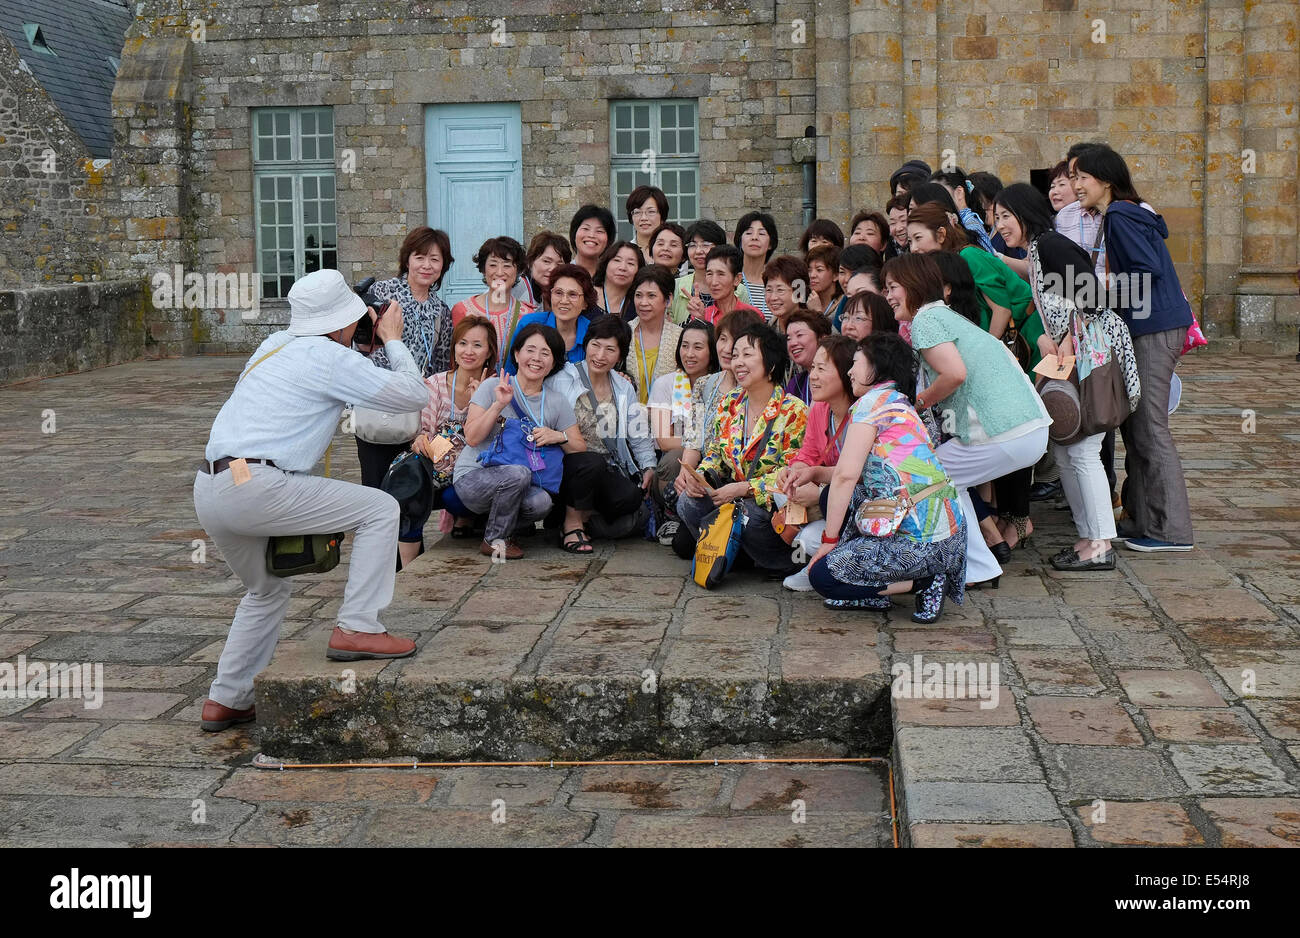 group of people being photographed - Stock Image